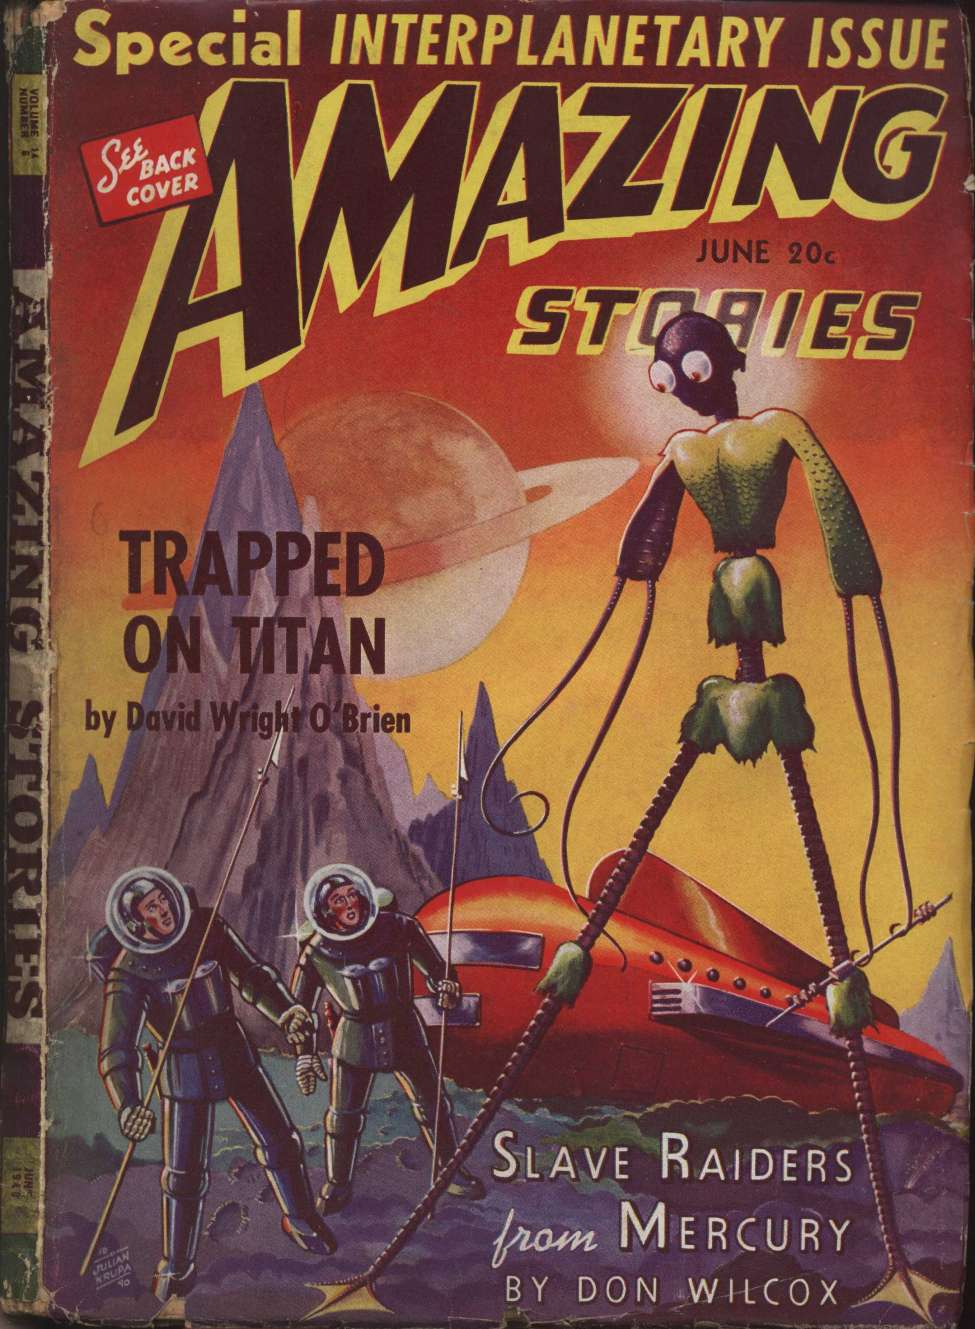 Comic Book Cover For Amazing Stories v14 06 - Slave Raiders from Mercury - Don Wilcox